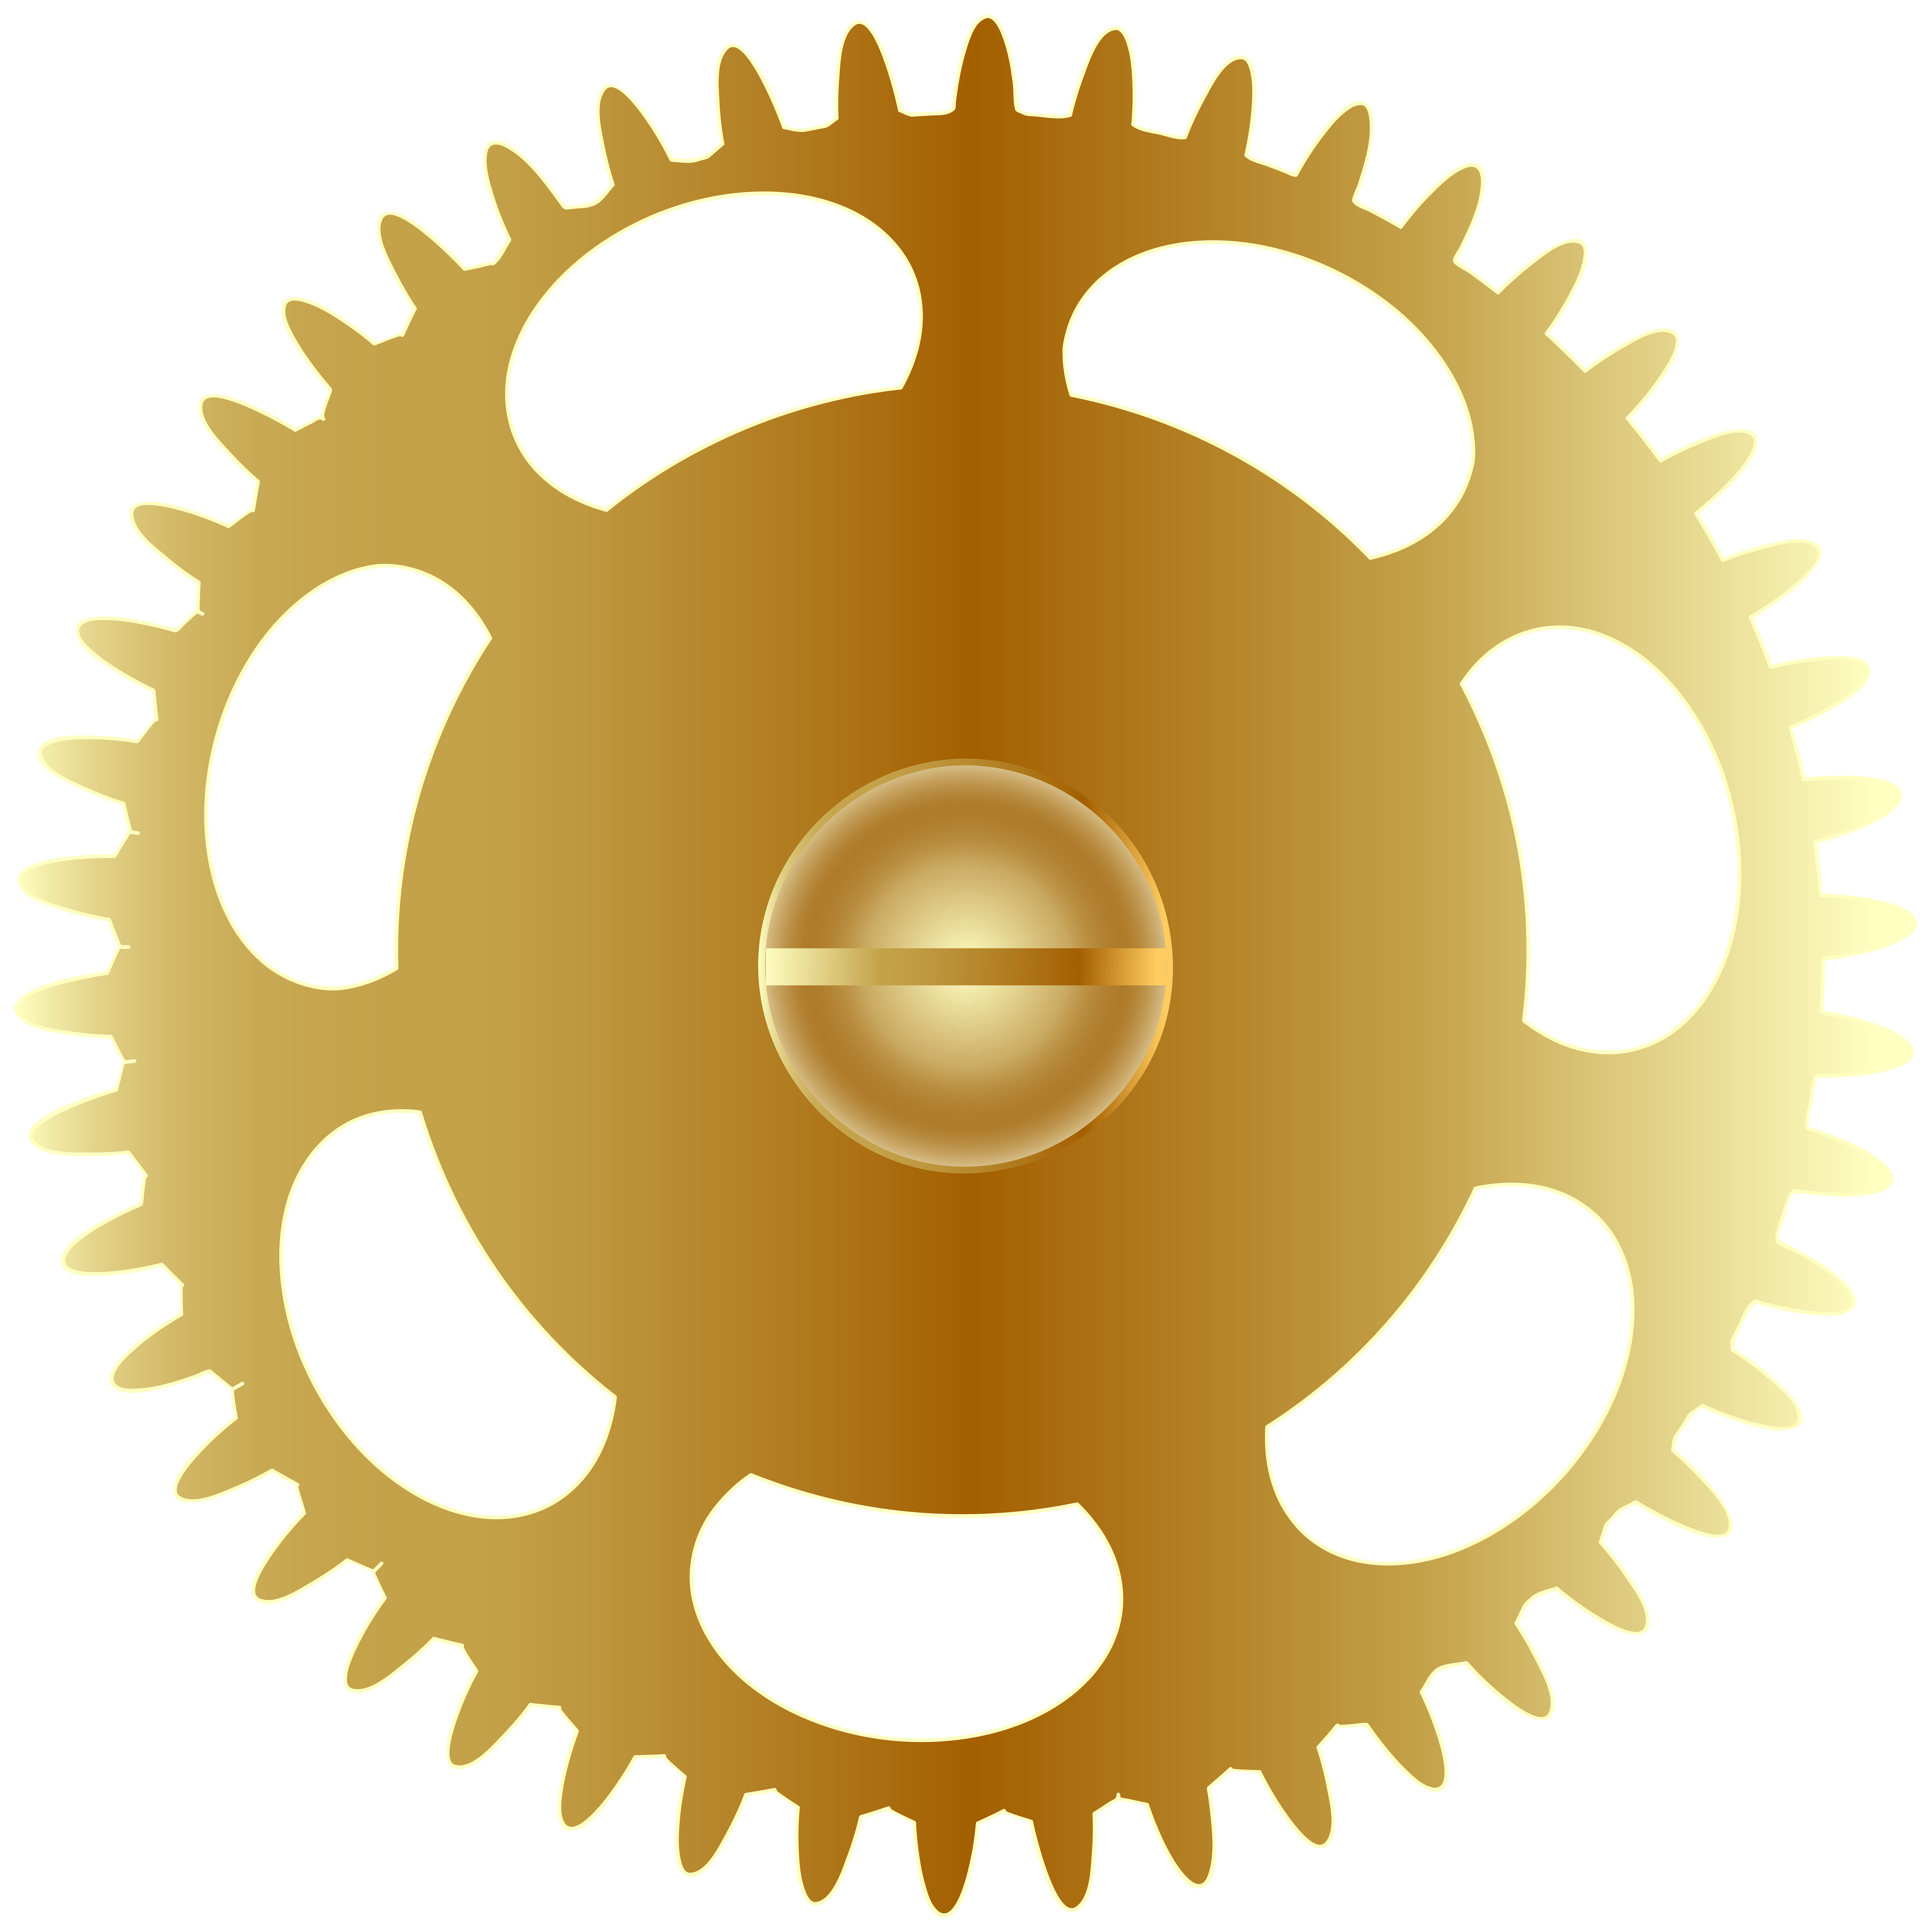 Gear heart clipart banner royalty free library Gold Steampunk Gear PNG Clip Art Image | Gallery Yopriceville ... banner royalty free library